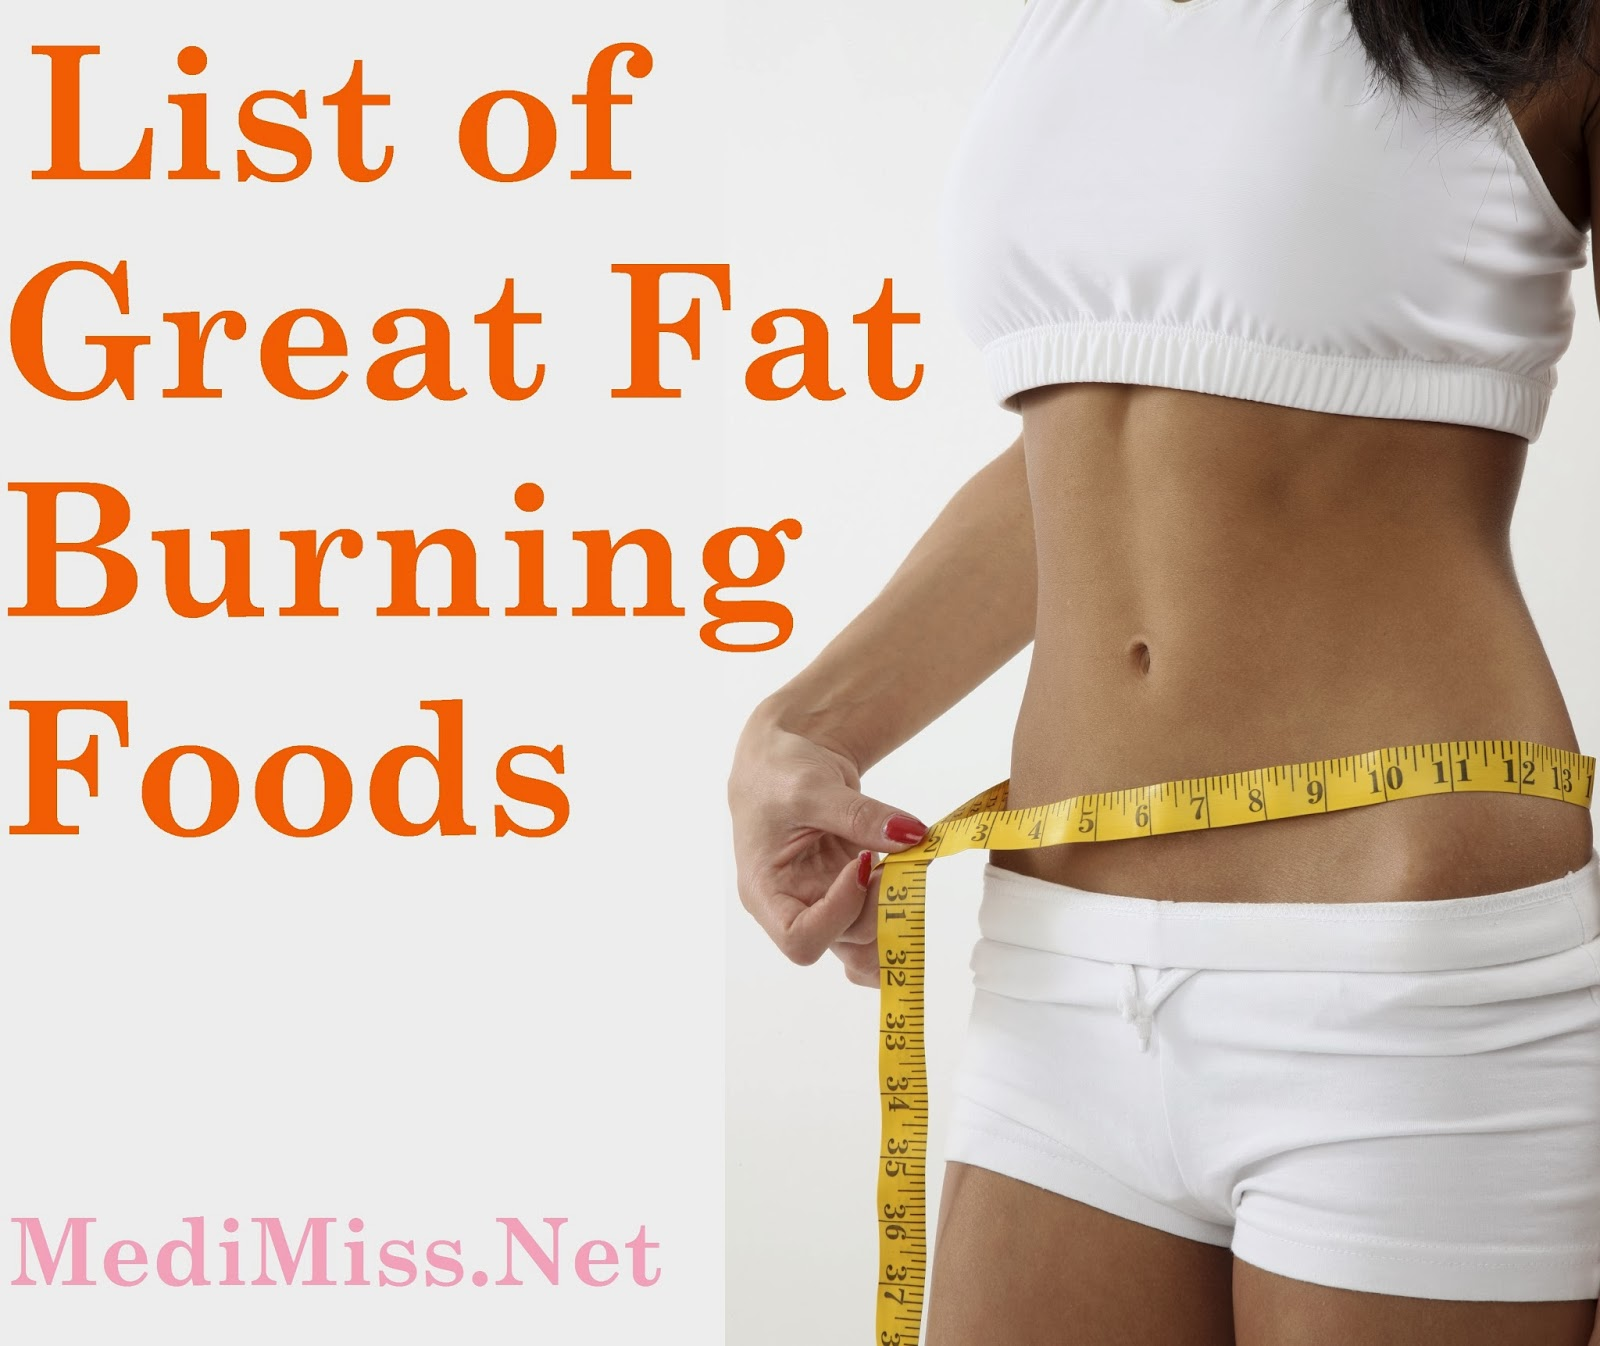 Great foods for burning fat running